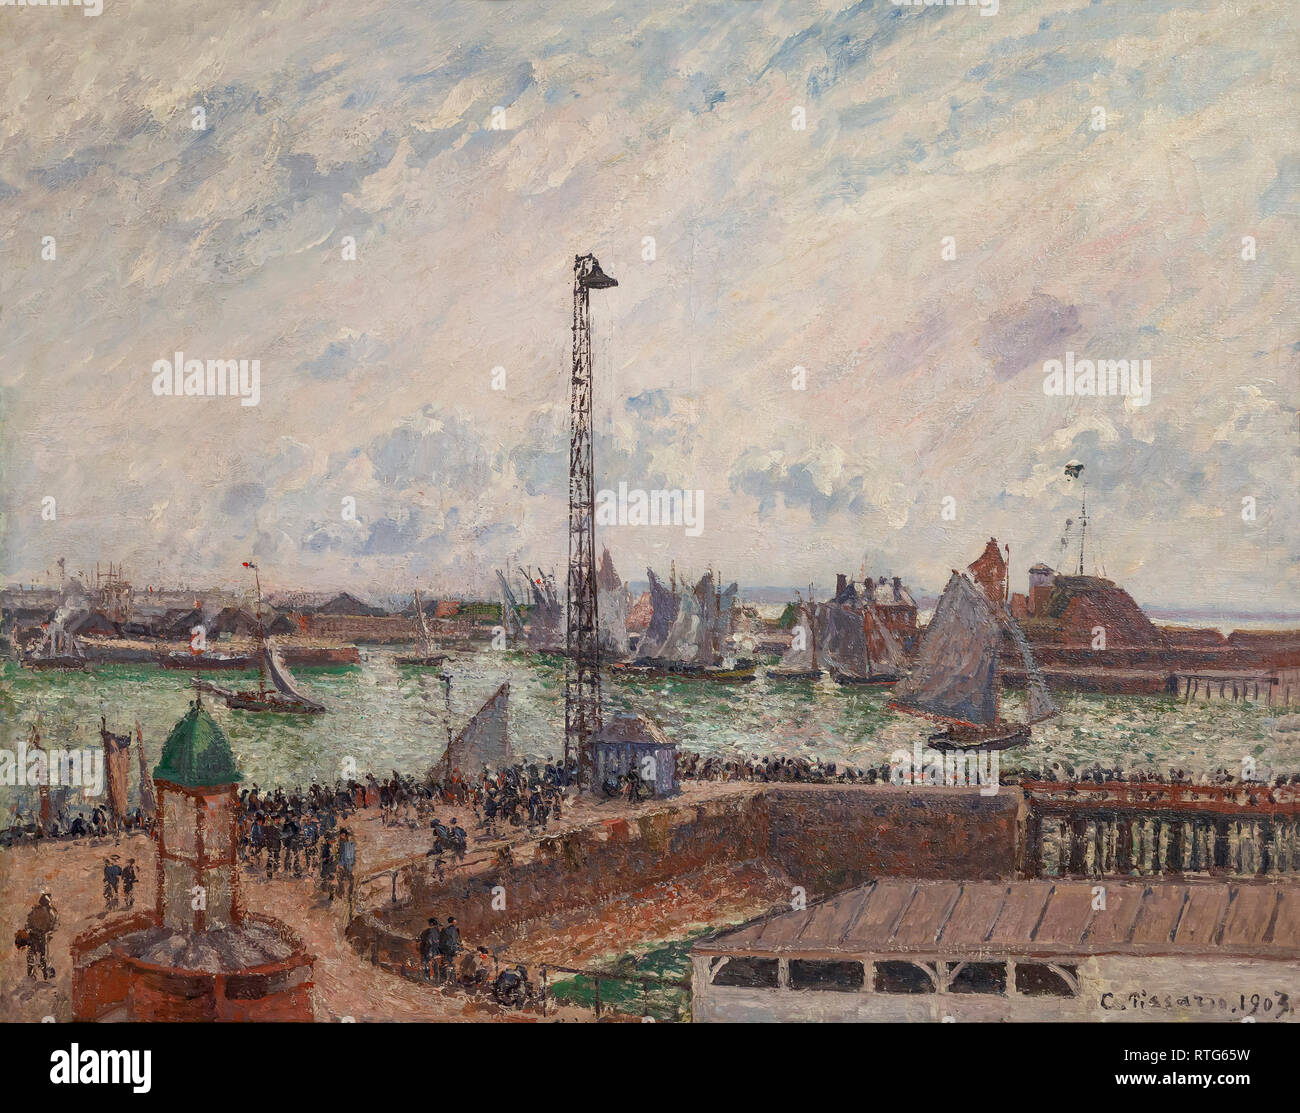 The Pilots' Jetty, Le Havre, Morning, Cloudy and Misty Weather, Camille Pissarro, 1903, - Stock Image